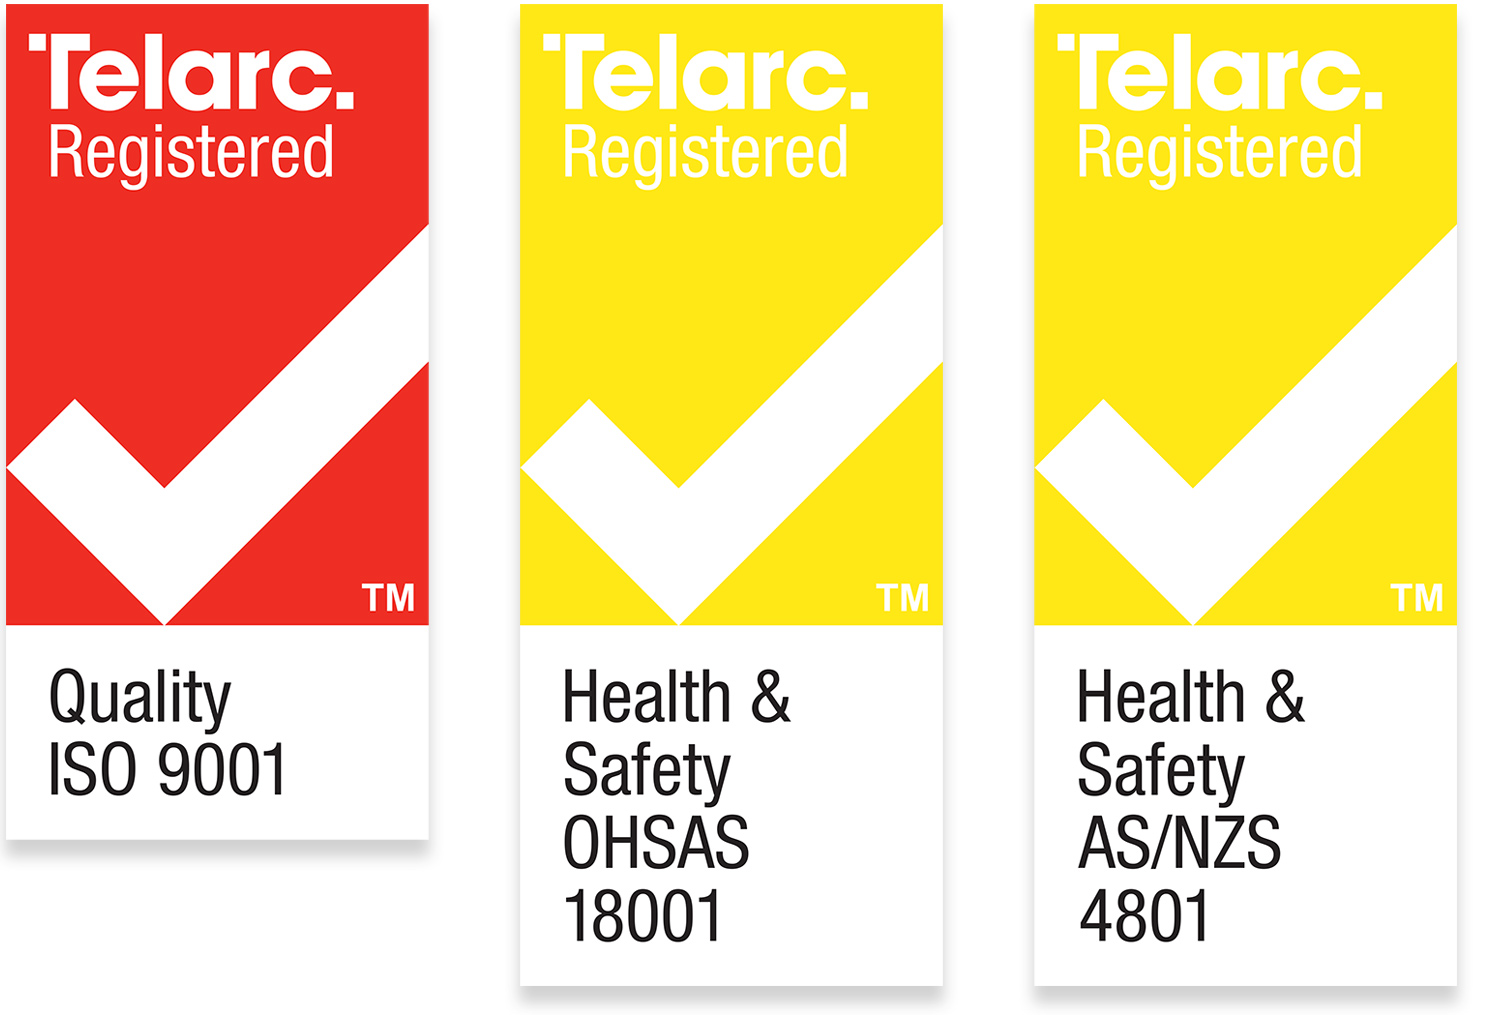 certification images